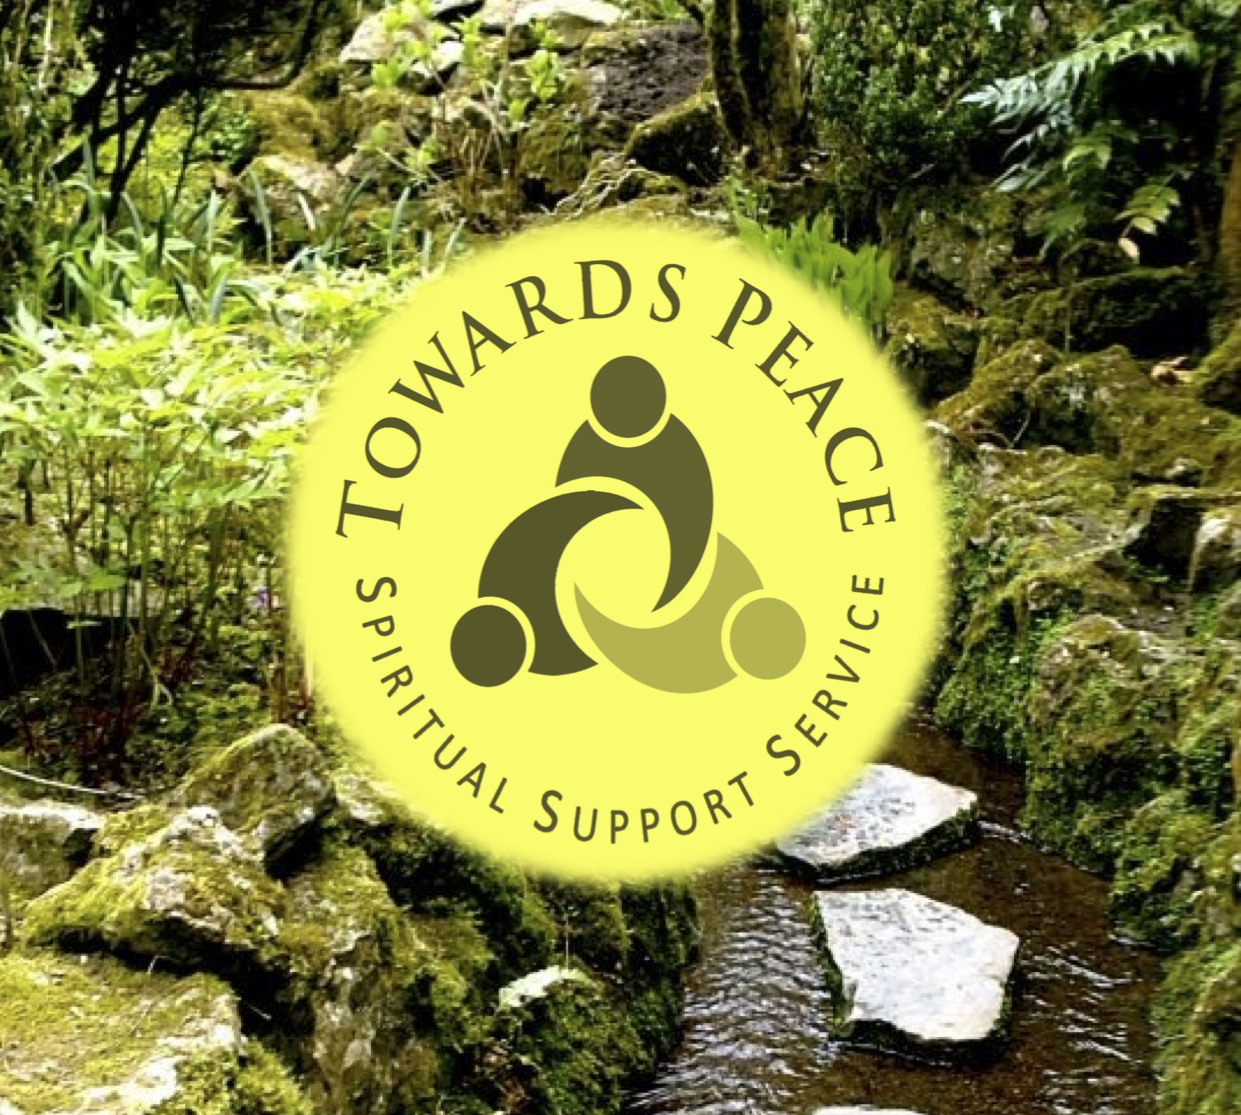 Towards Peace - A safe supportive space for people affected by abuse in a Church context